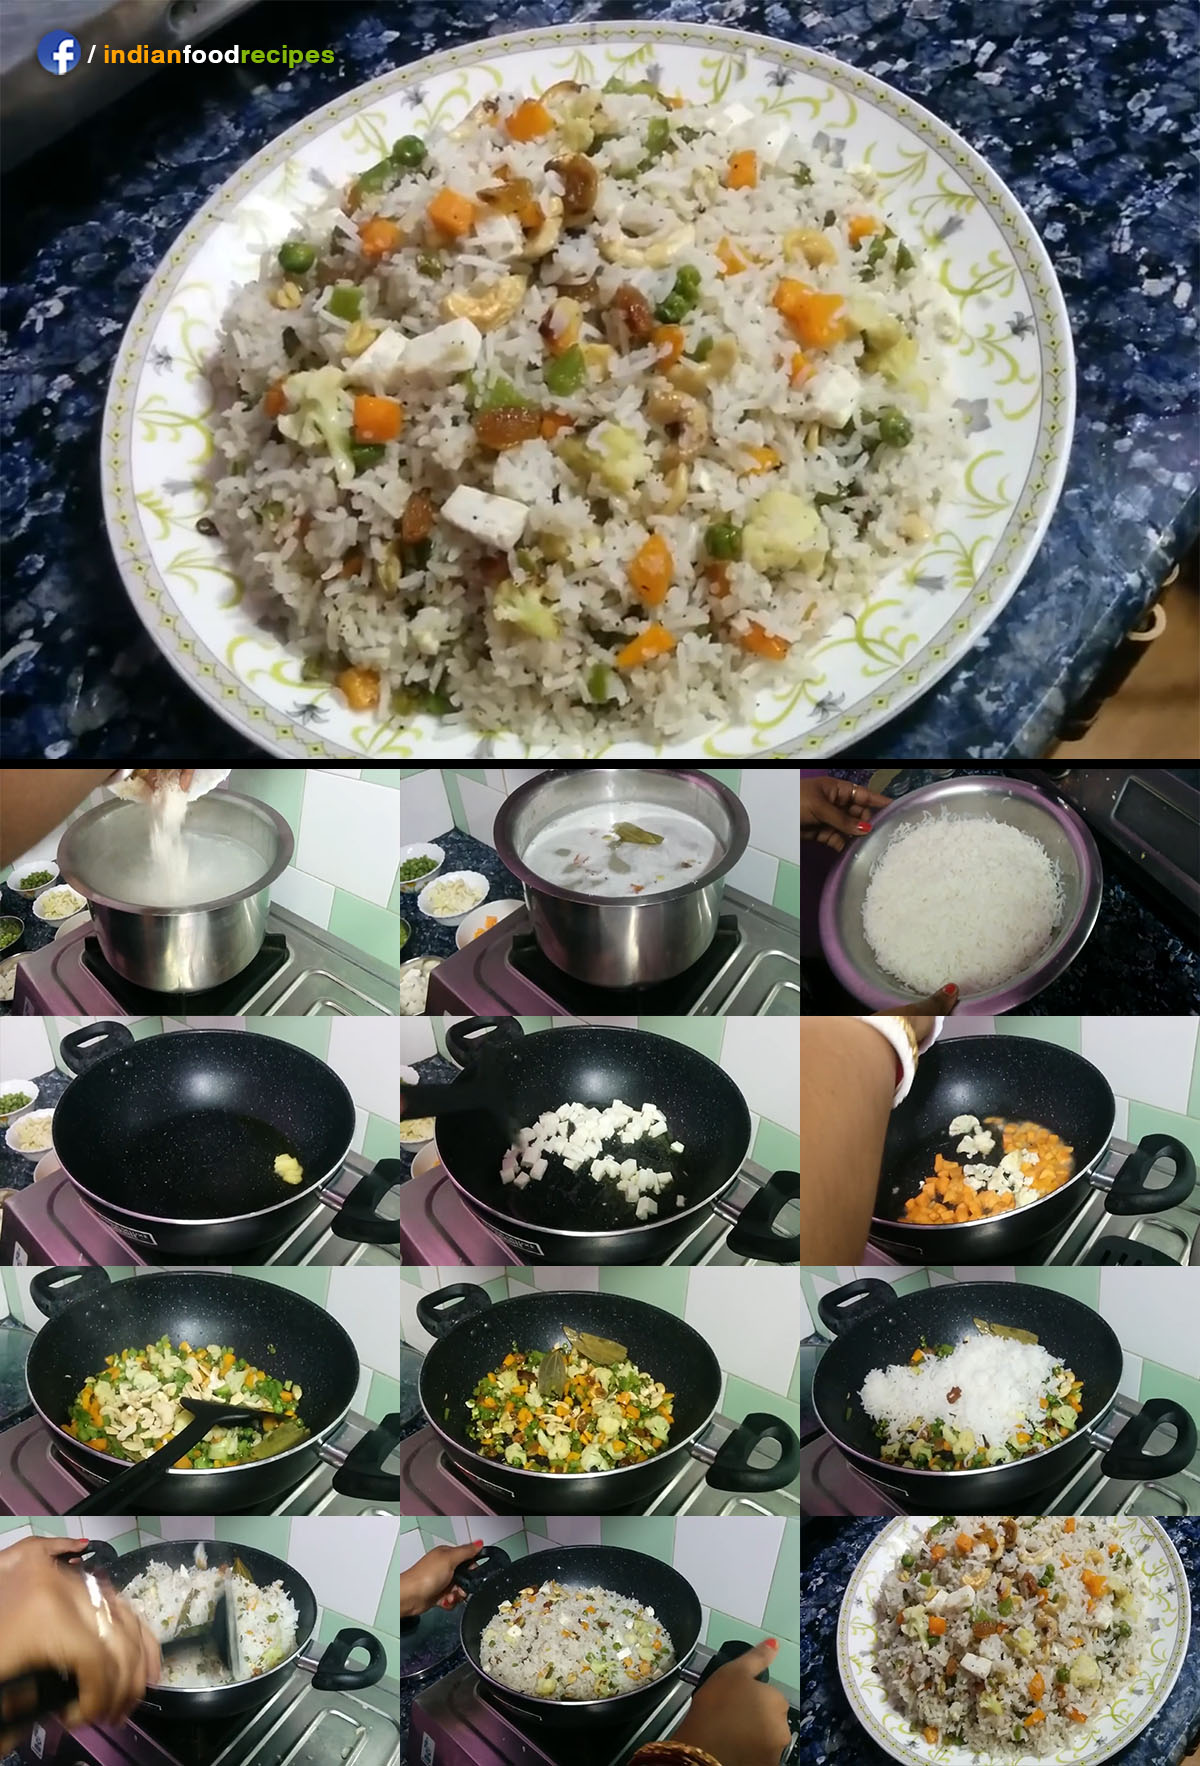 Vegetable Paneer Fried Rice recipe step by step